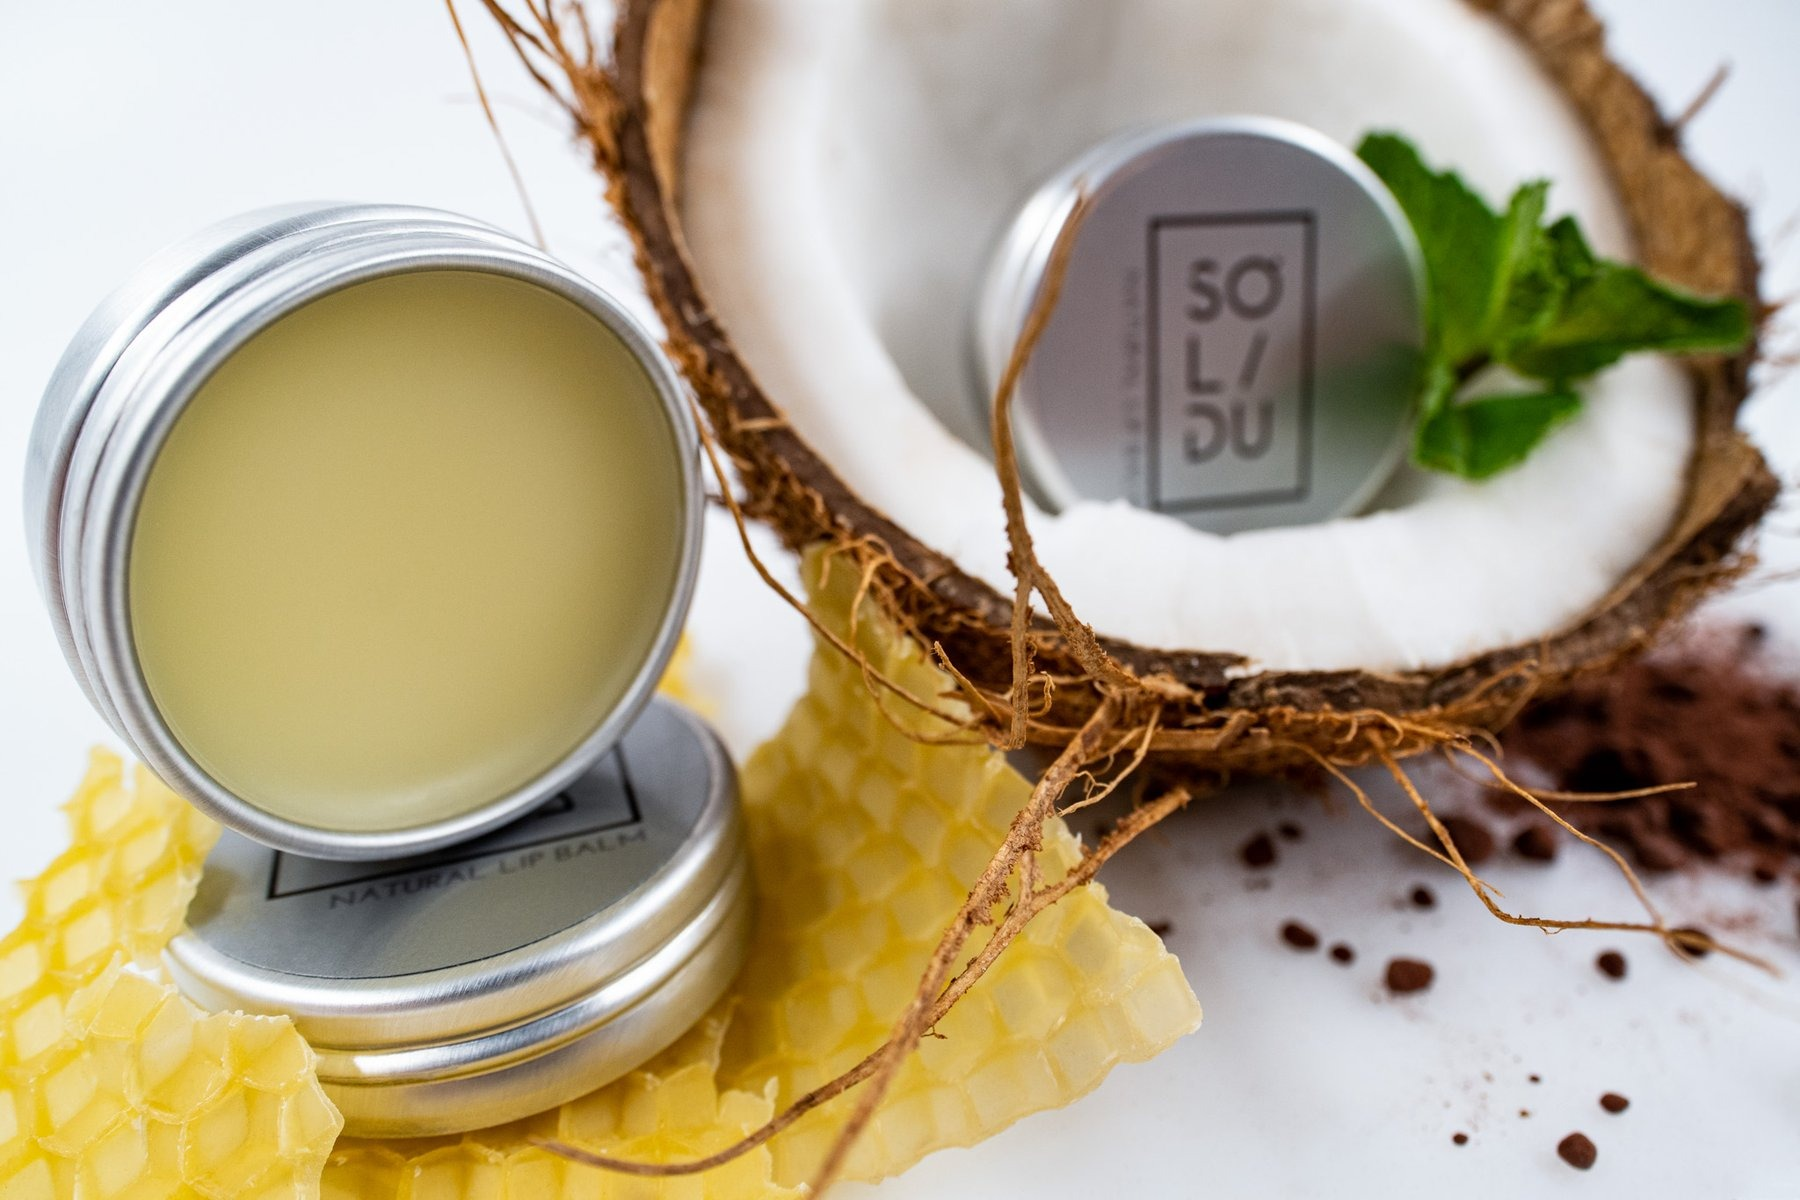 Solidu Natural Lip Balm